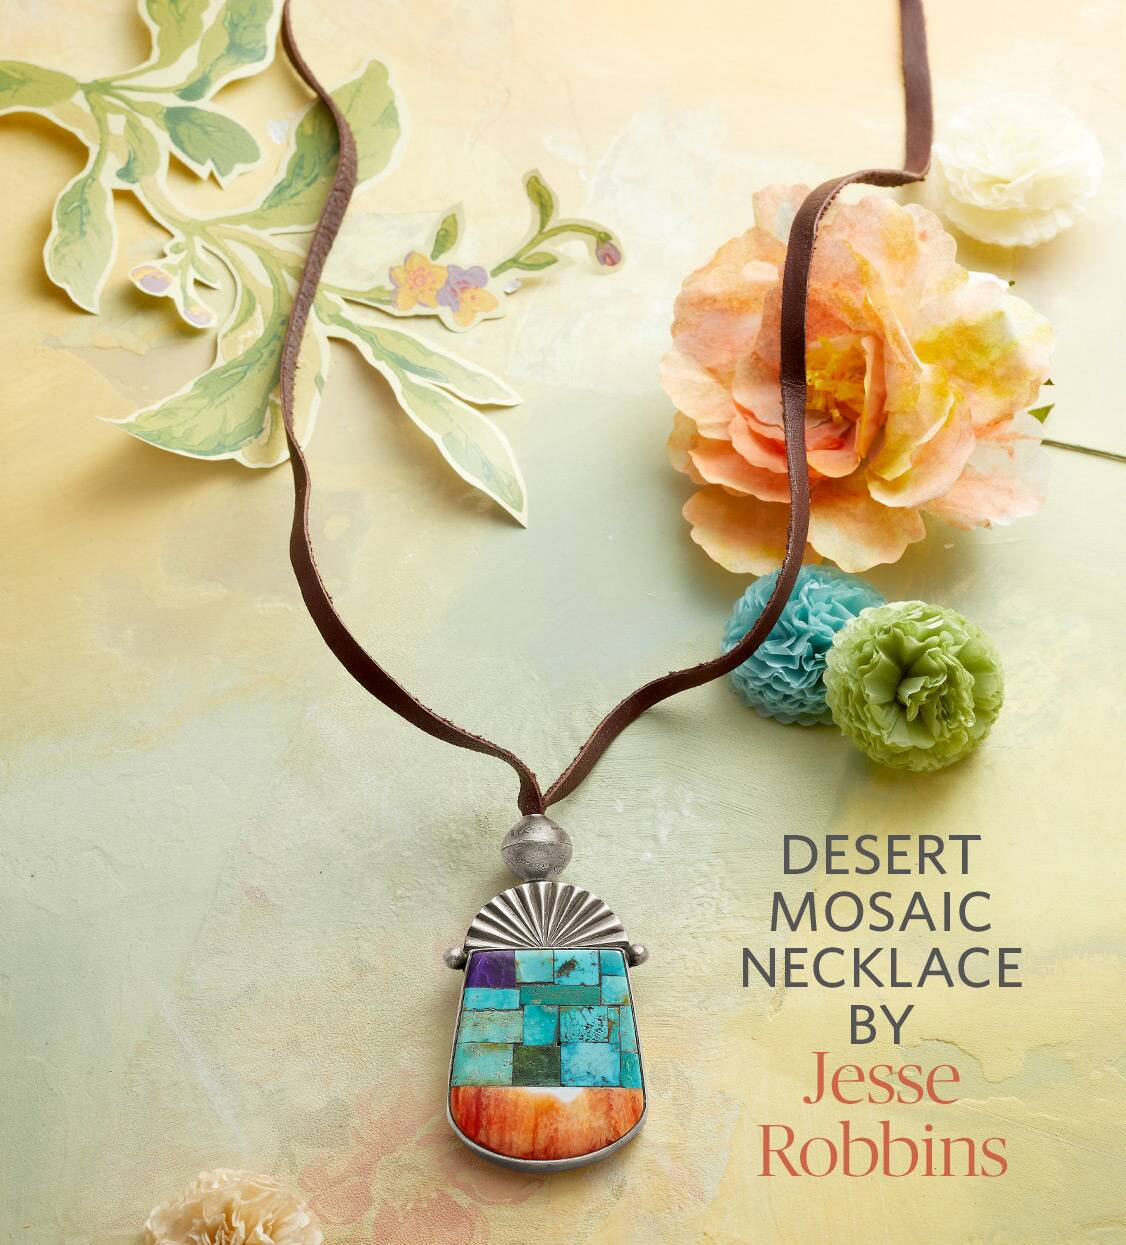 Desert Mosaic Necklace by Jesse Robbins